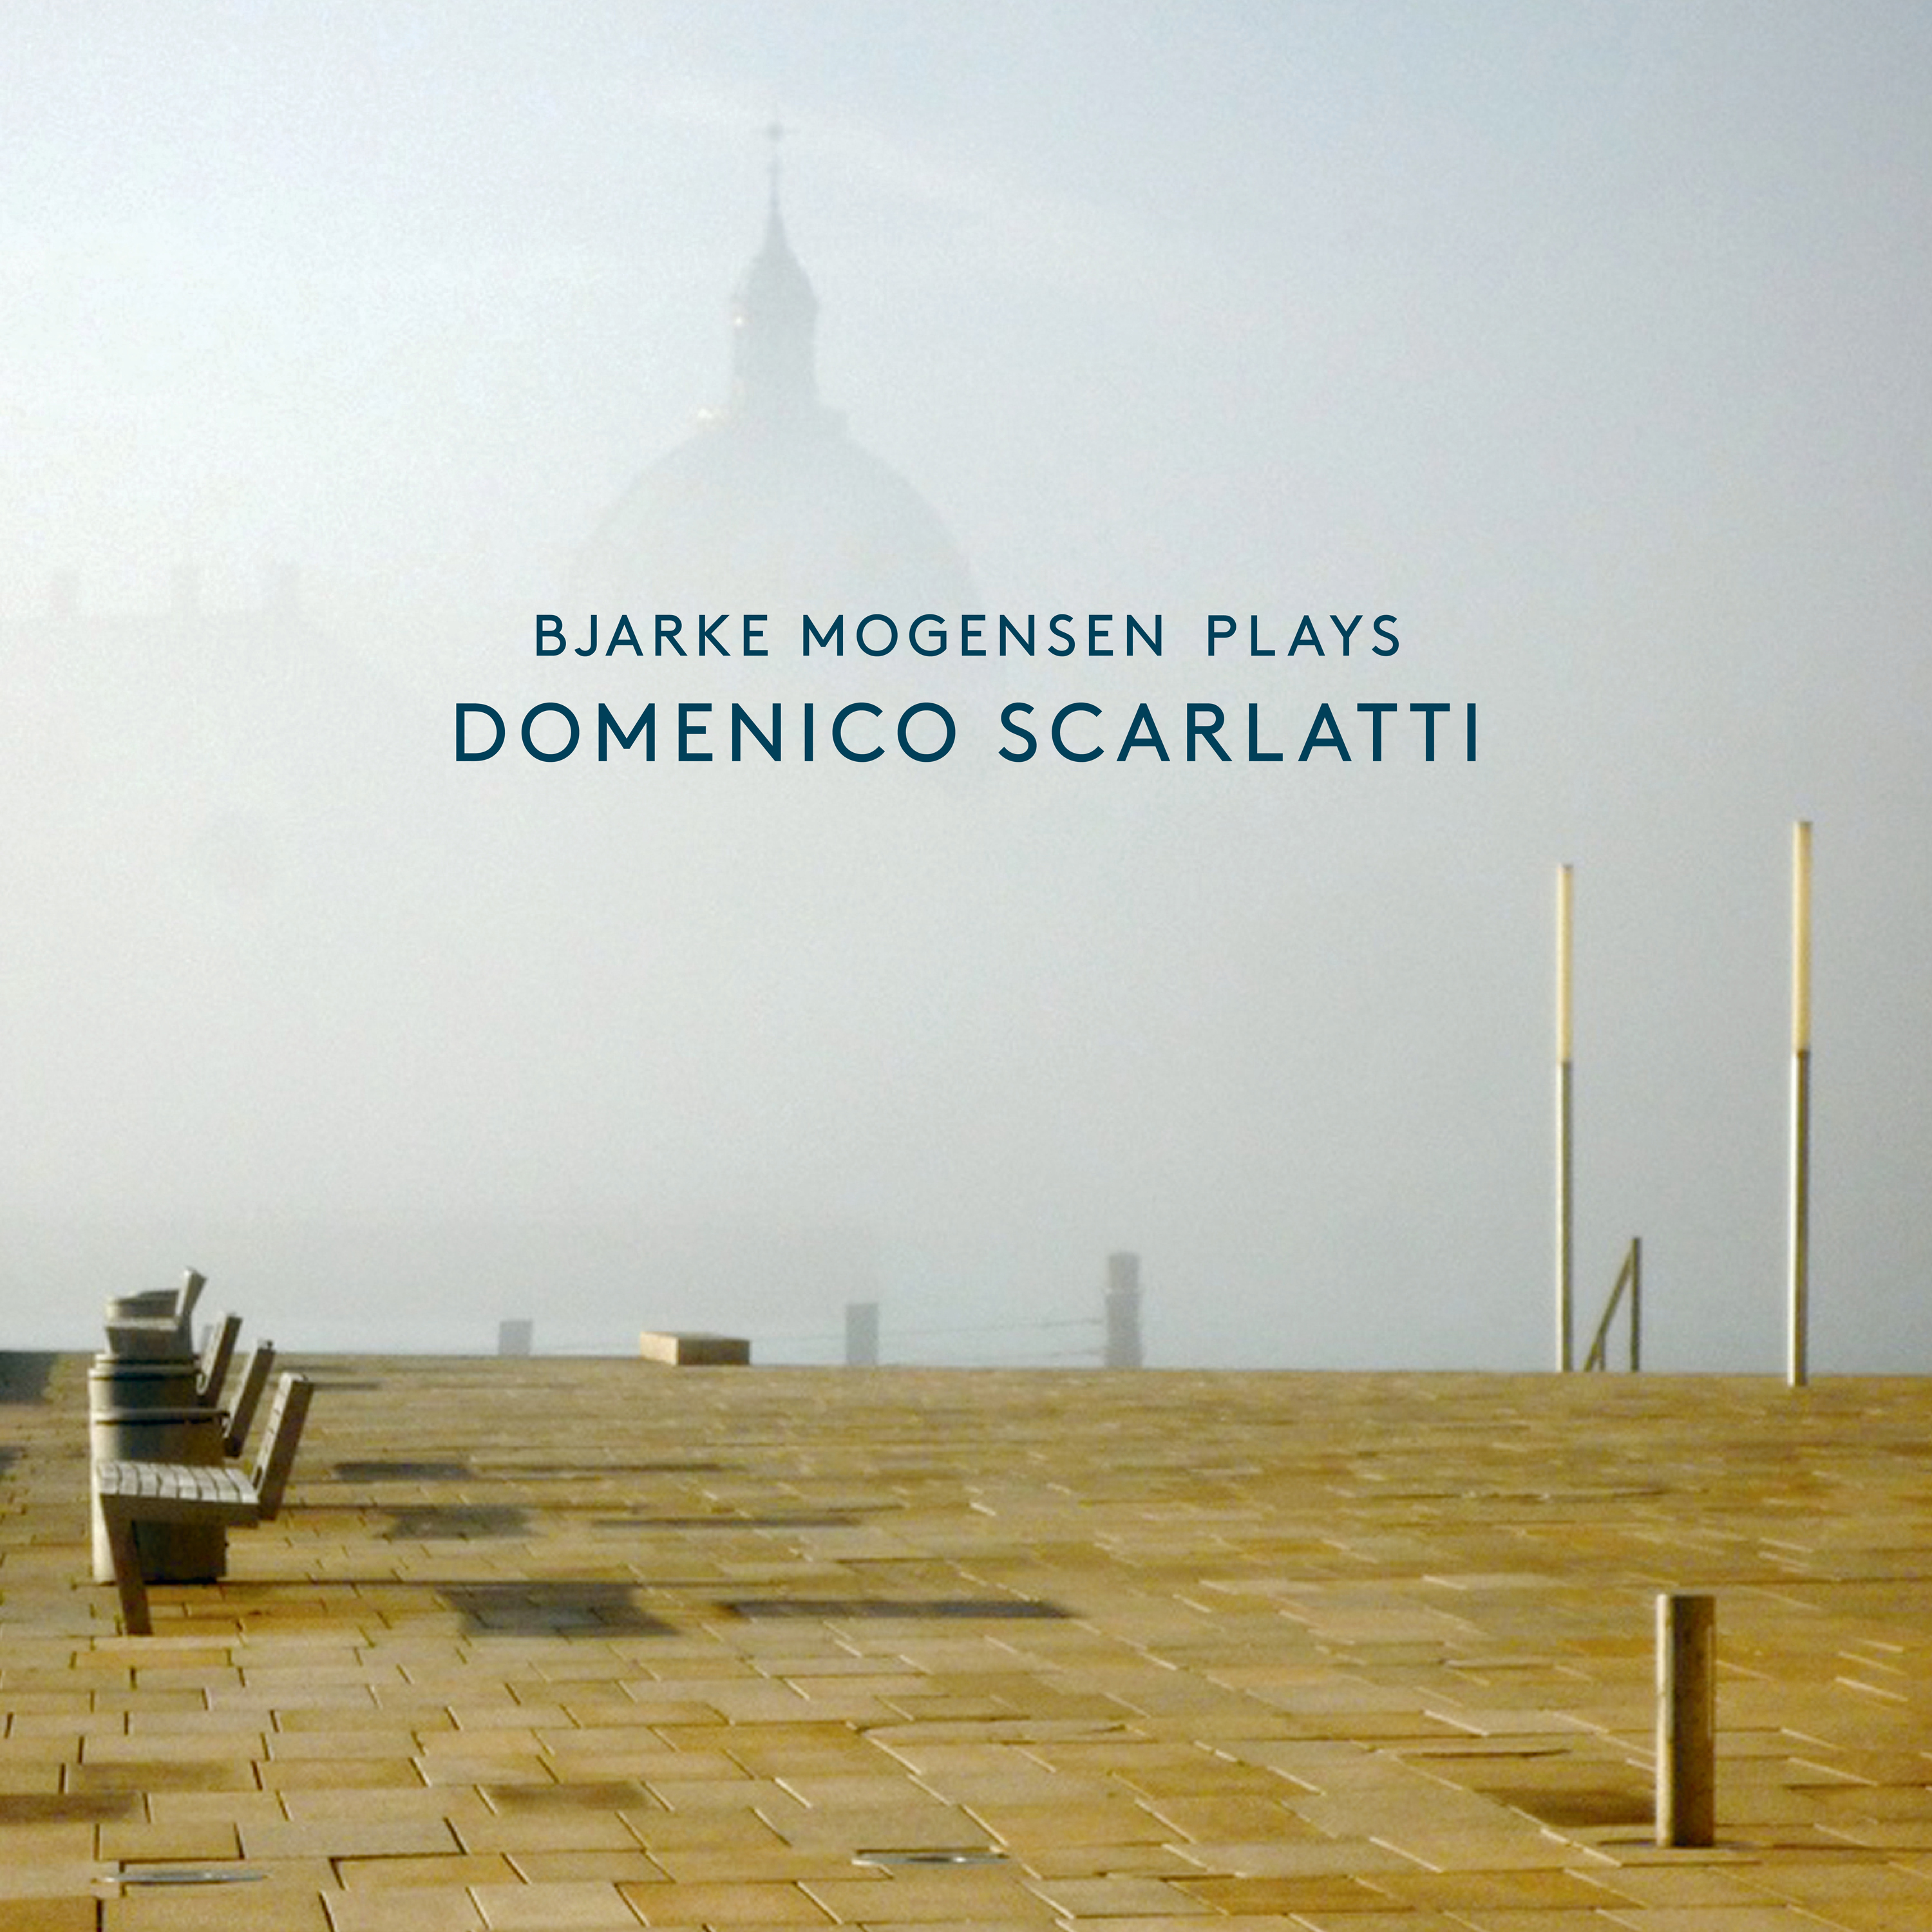 New Scarlatti-release Album of the Week on National Danish Radio